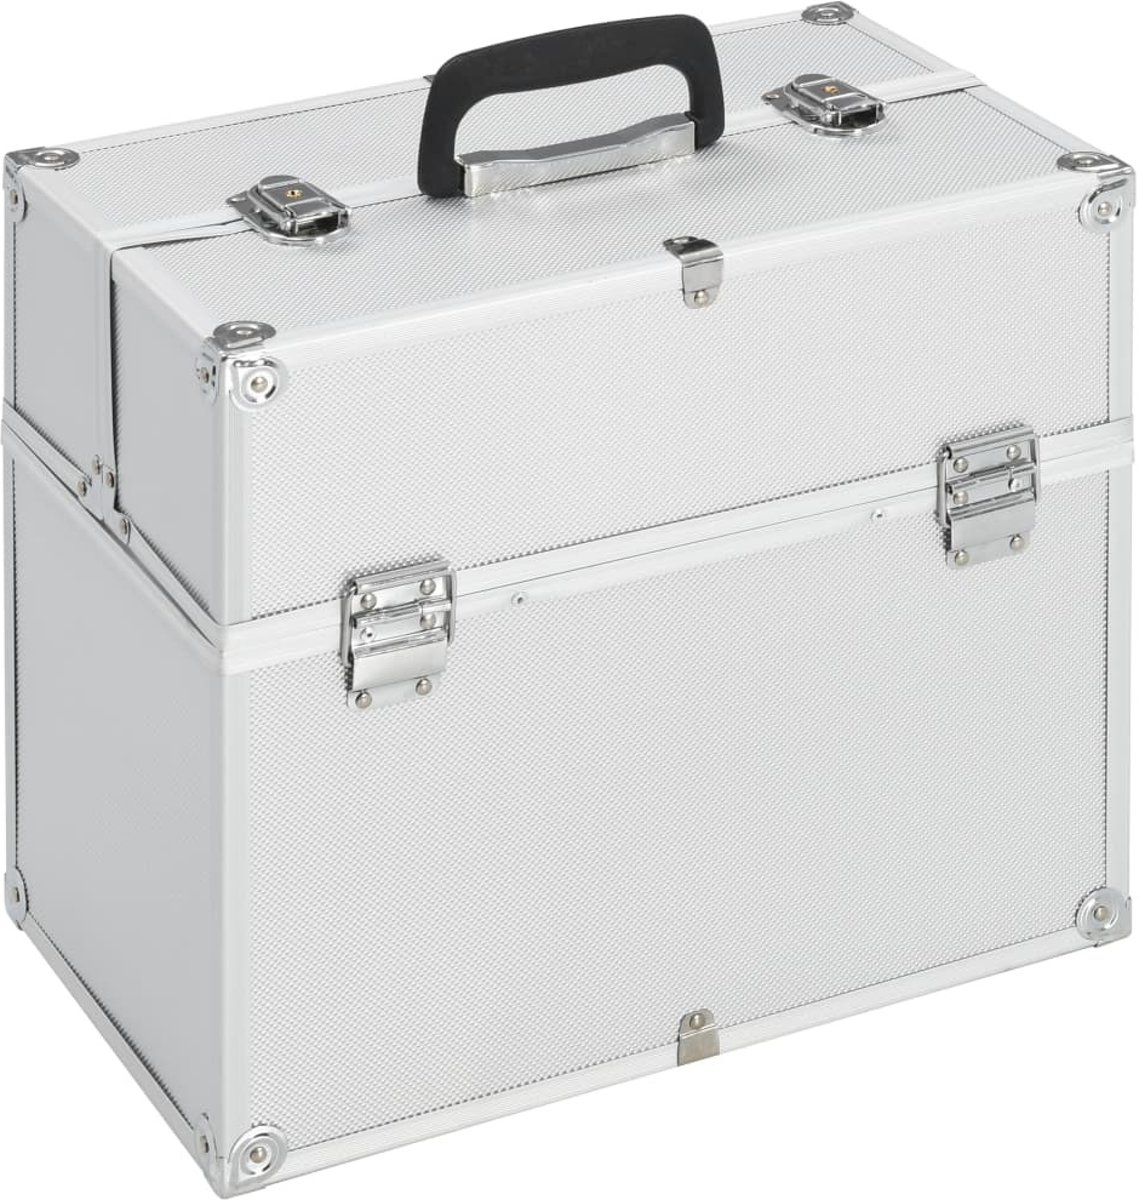 Make-up koffer 37x24x35cm aluminium Zilver - Visagie koffer - Cosmetica koffer - Beauty case - Nagelstyliste koffer - make up case